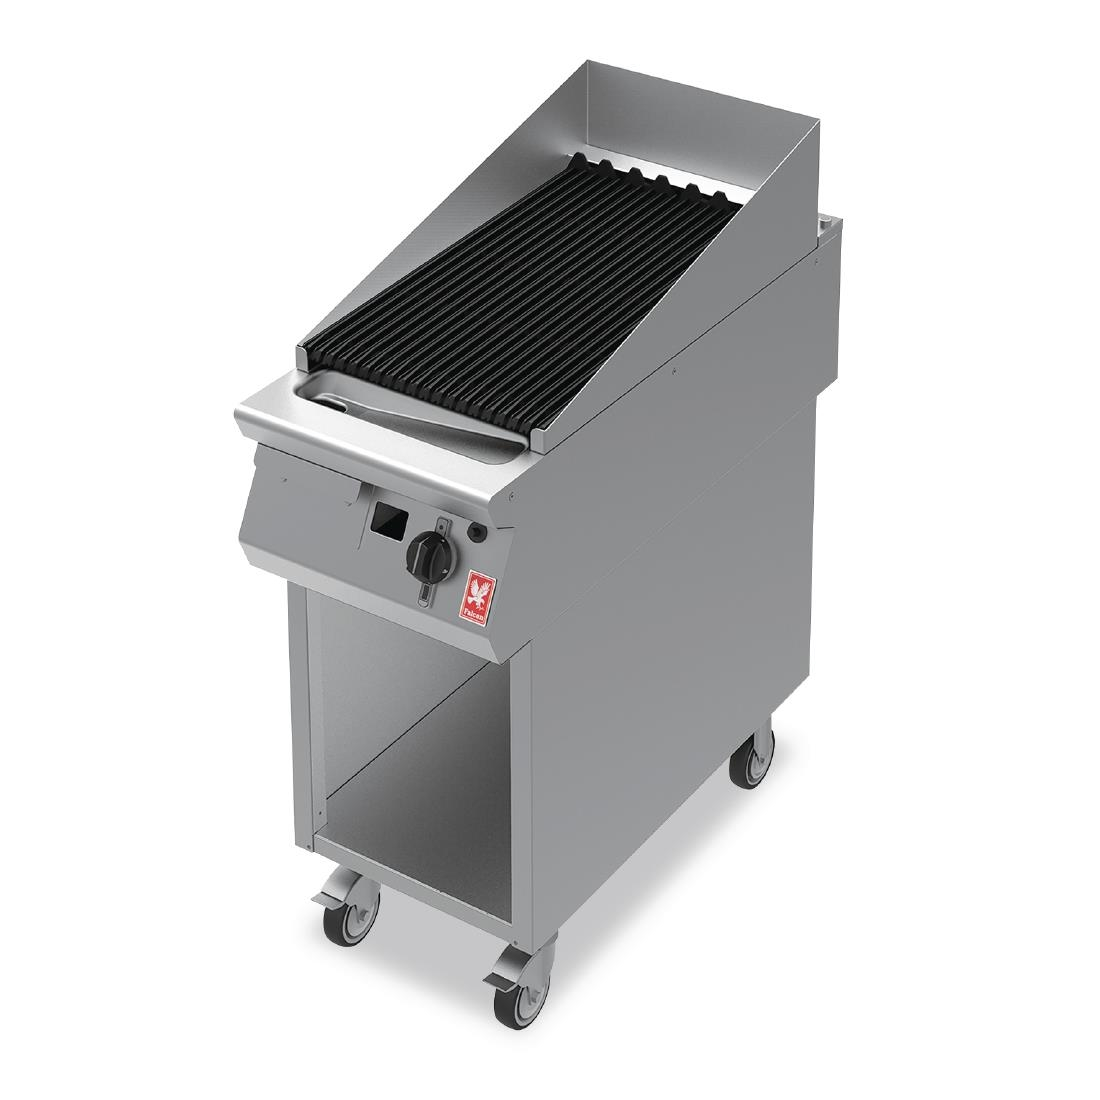 Click to view product details and reviews for Falcon F900 Chargrill On Mobile Stand Natural Gas G9440.